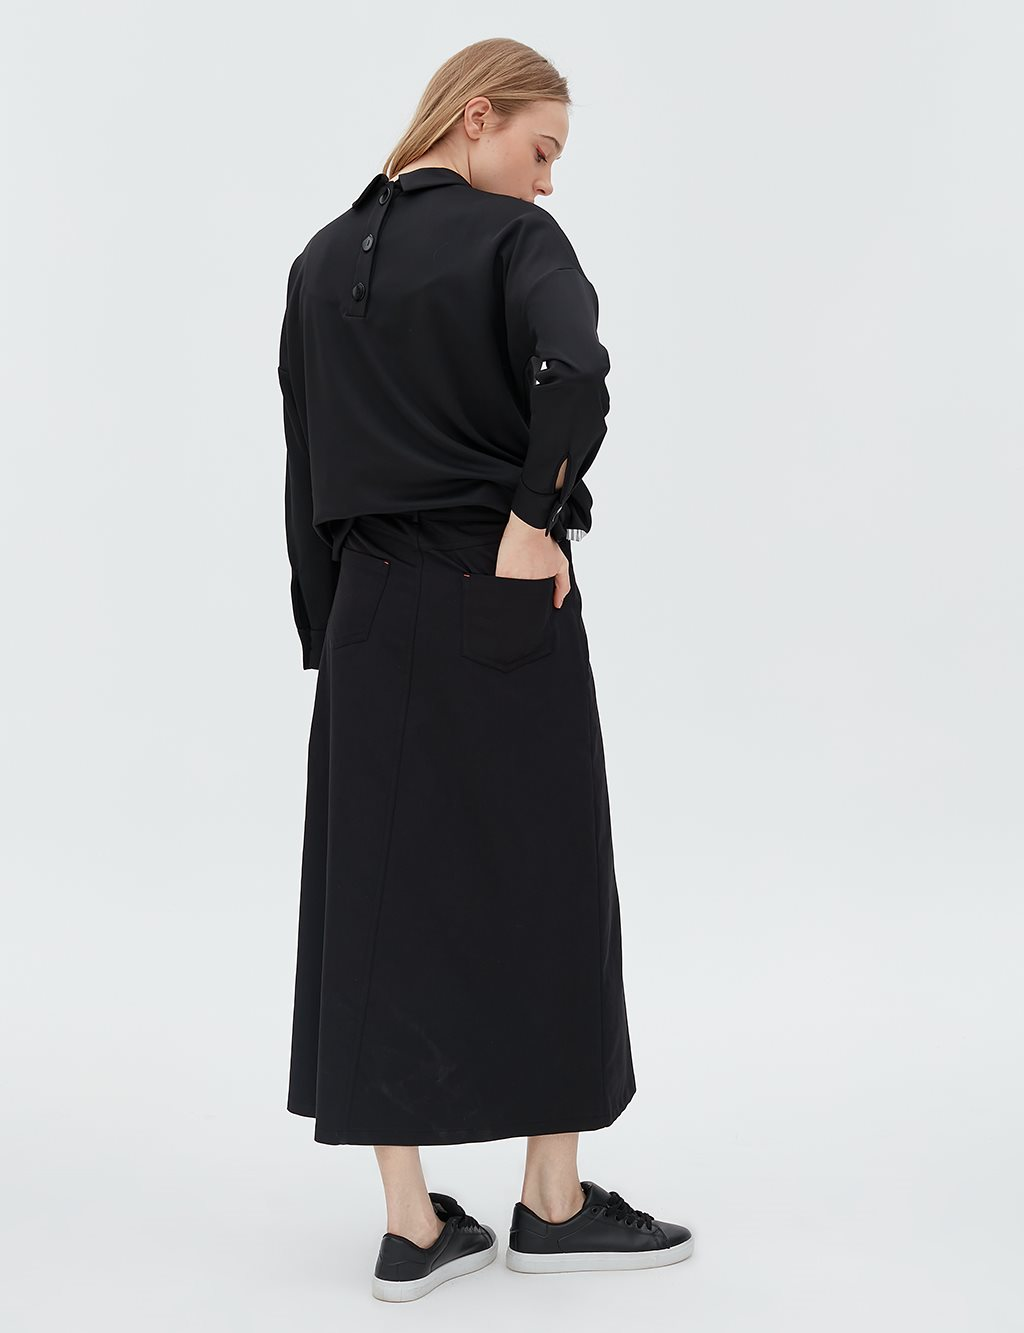 Skirt With Pocket Detailed B20 12017 Black